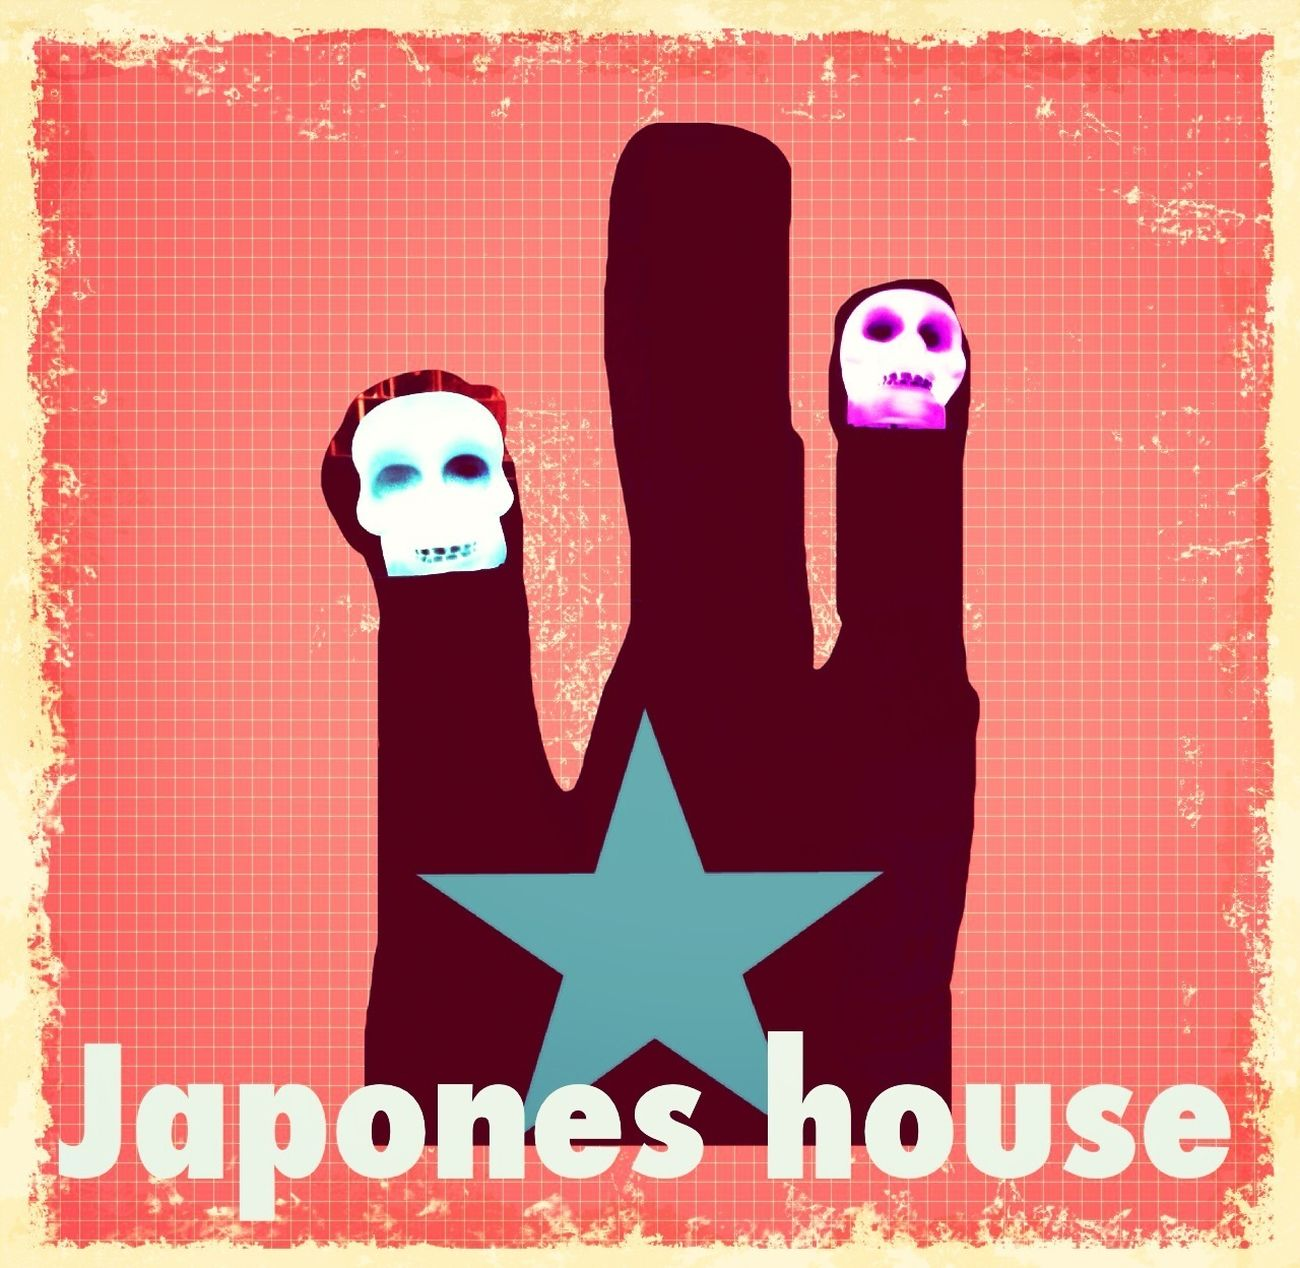 Japones house